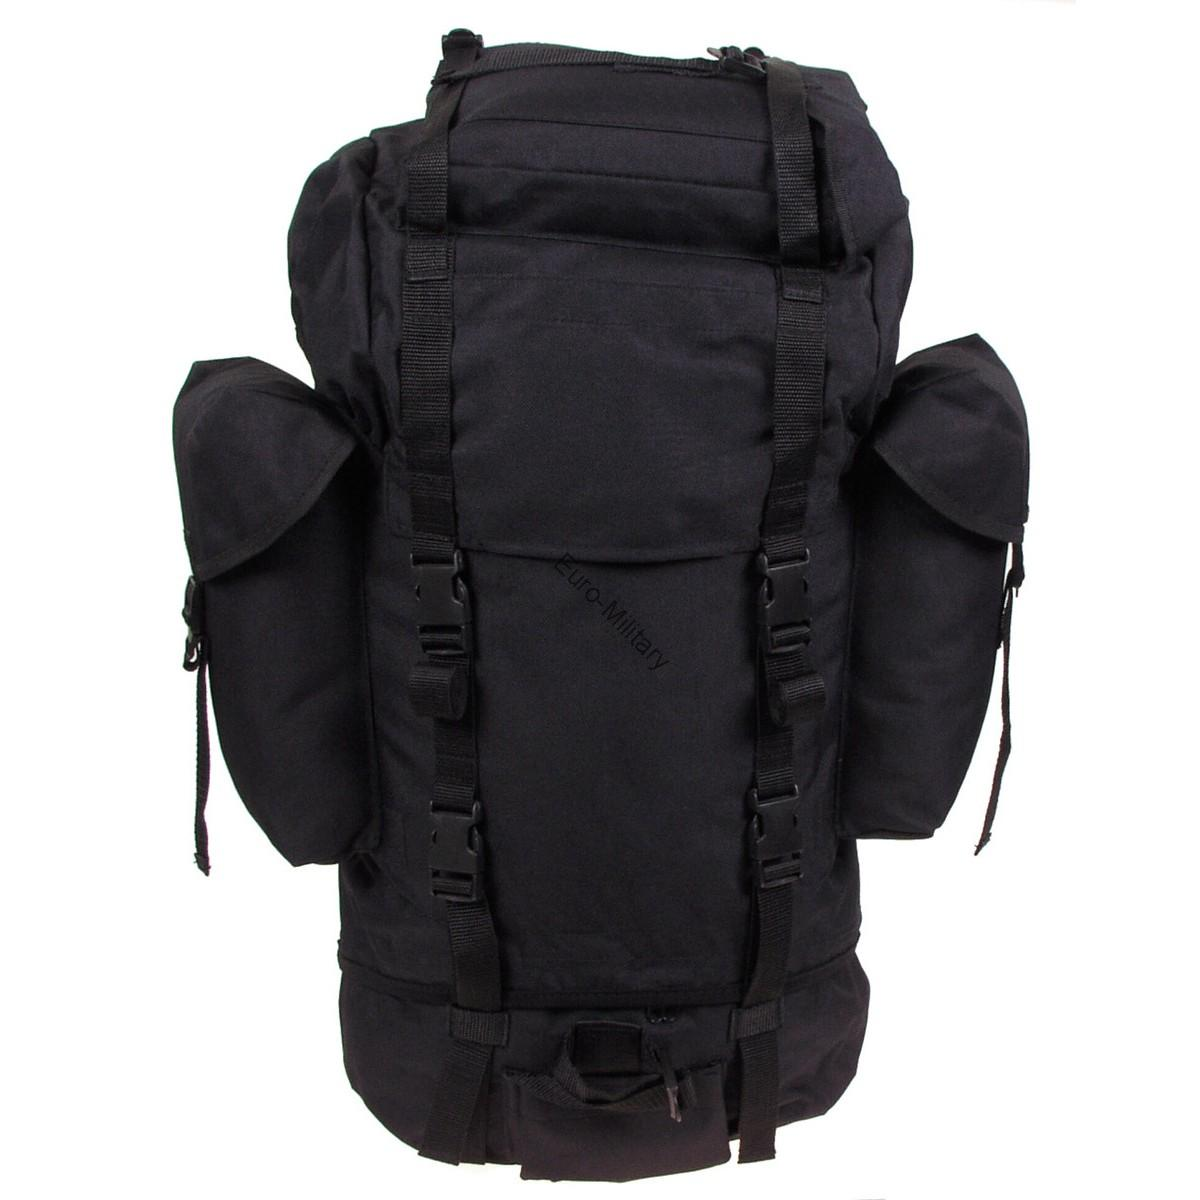 Military Patrol Expedition Backpack Large 65L - Black